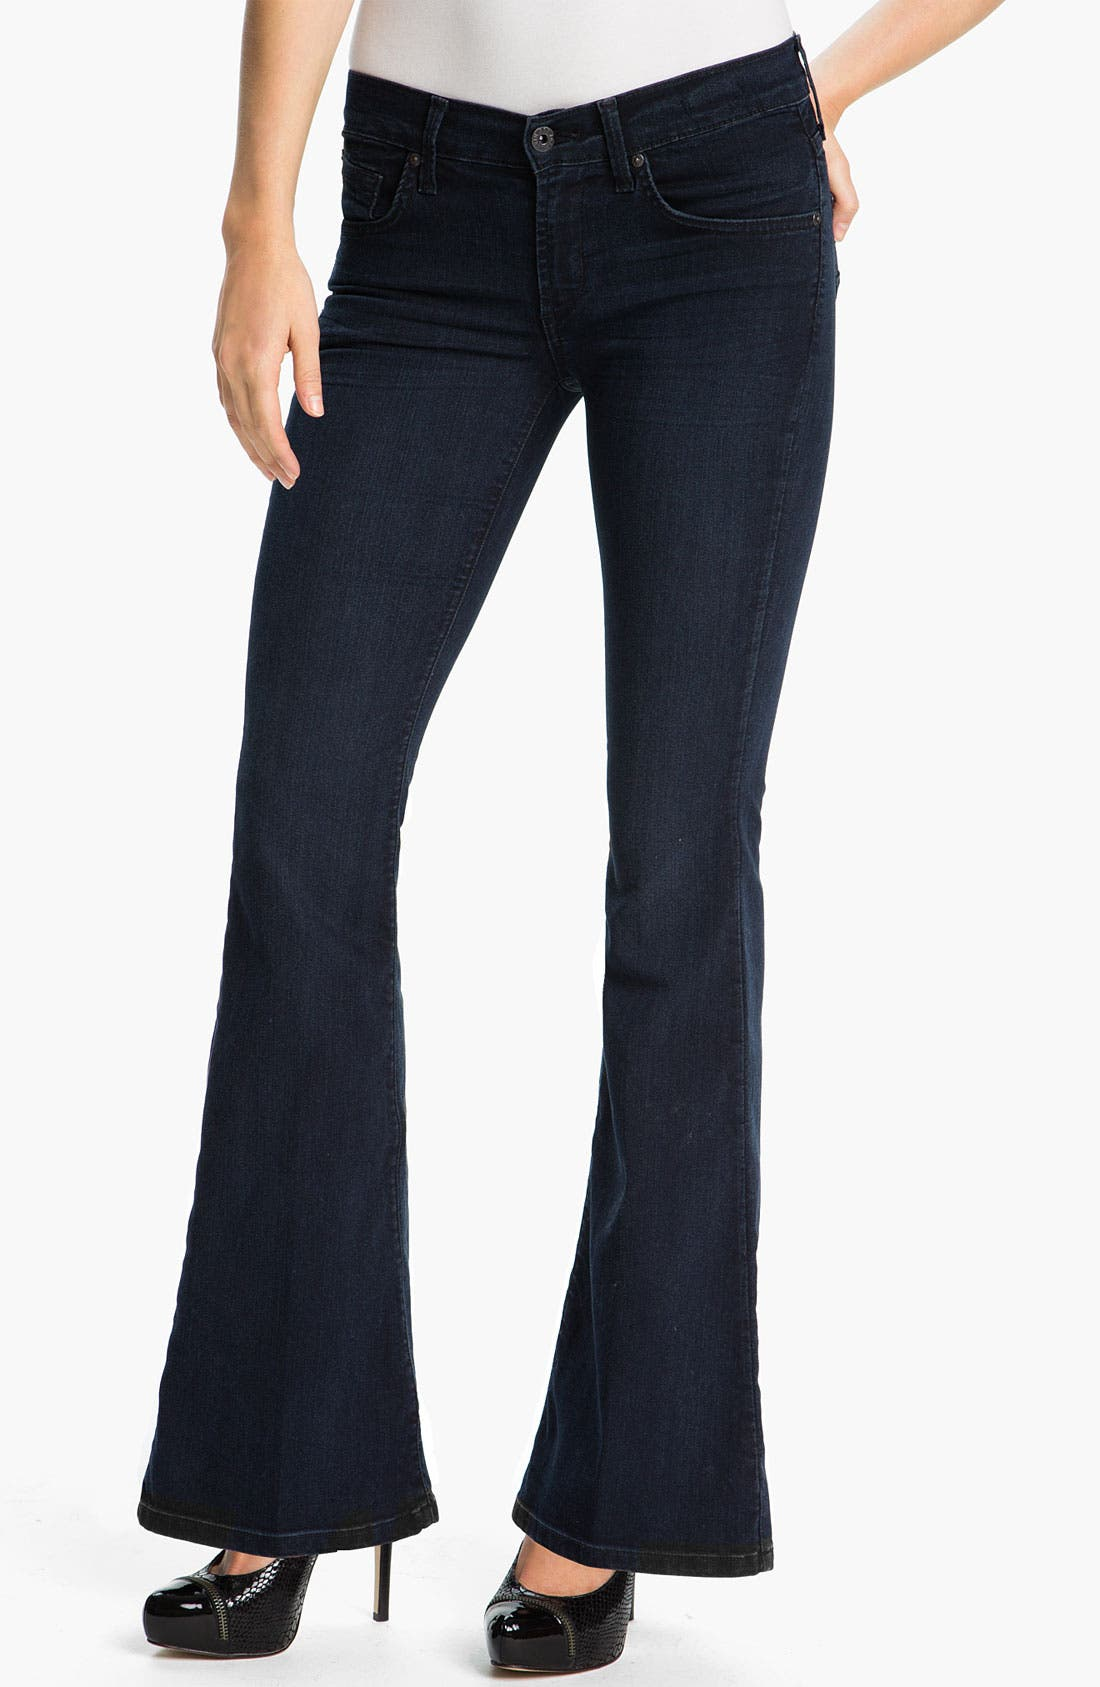 Alternate Image 1 Selected - James Jeans 'Ultra Flare' Jeans (Amore) (Petite)